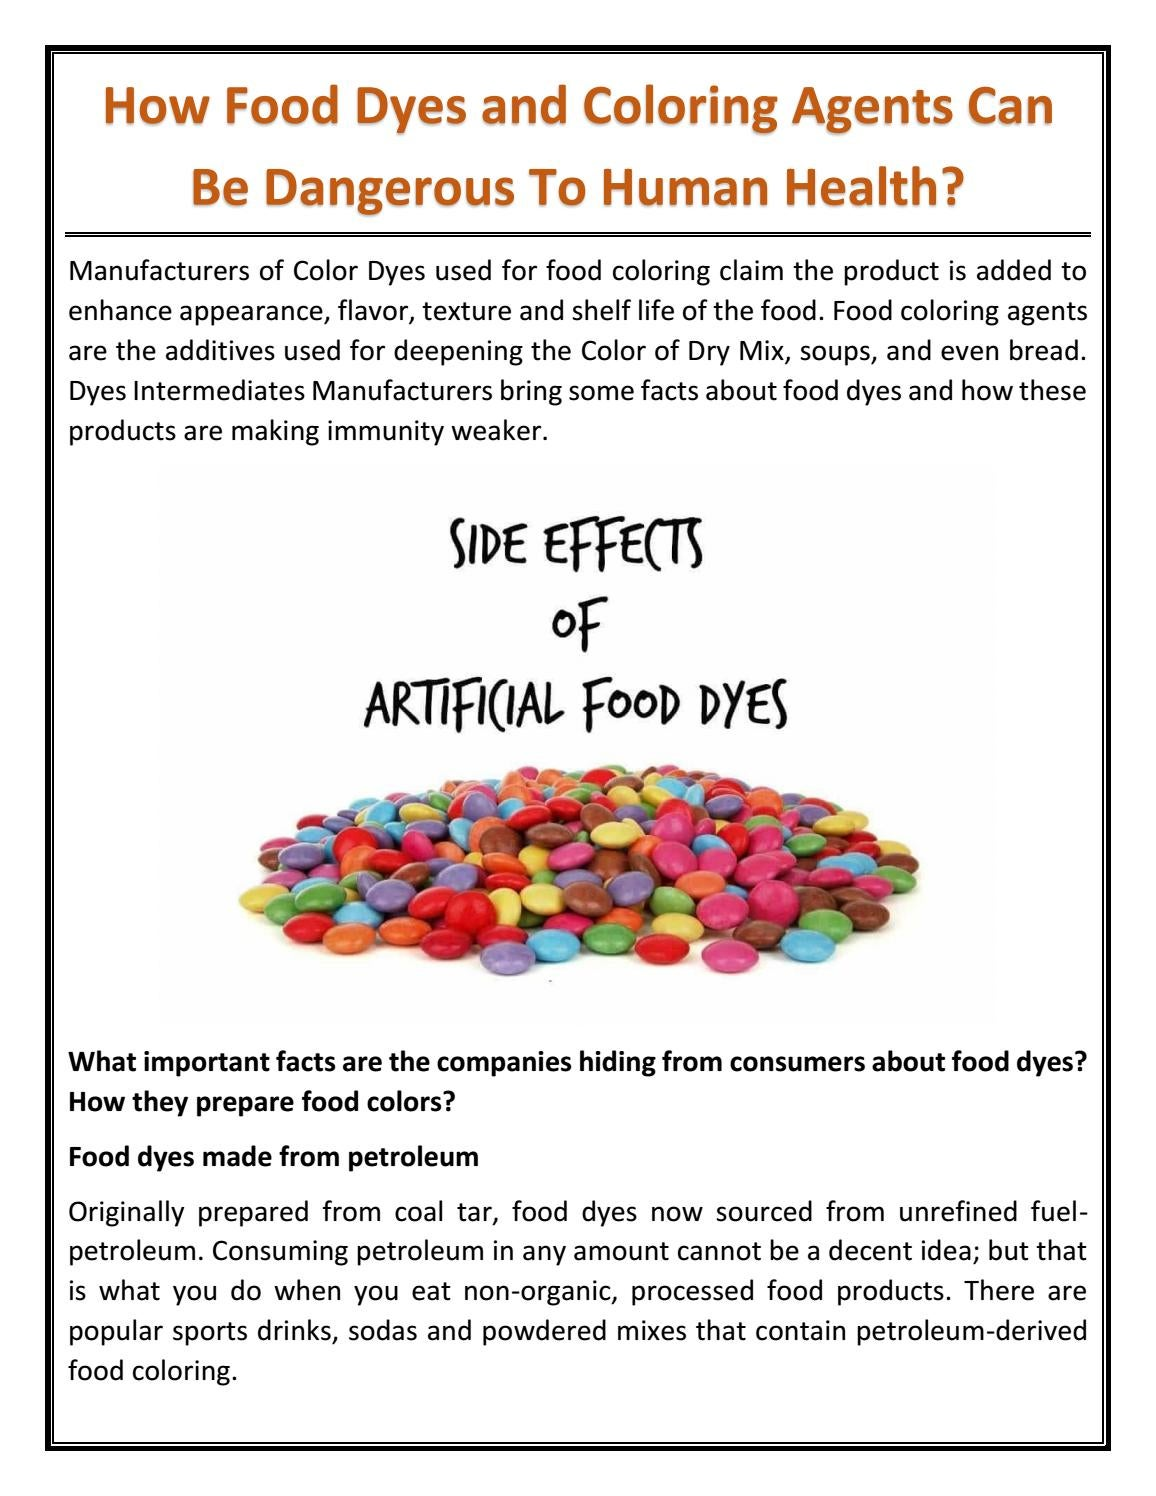 How Food Dyes and Coloring Agents Can Be Dangerous To Human Health ...